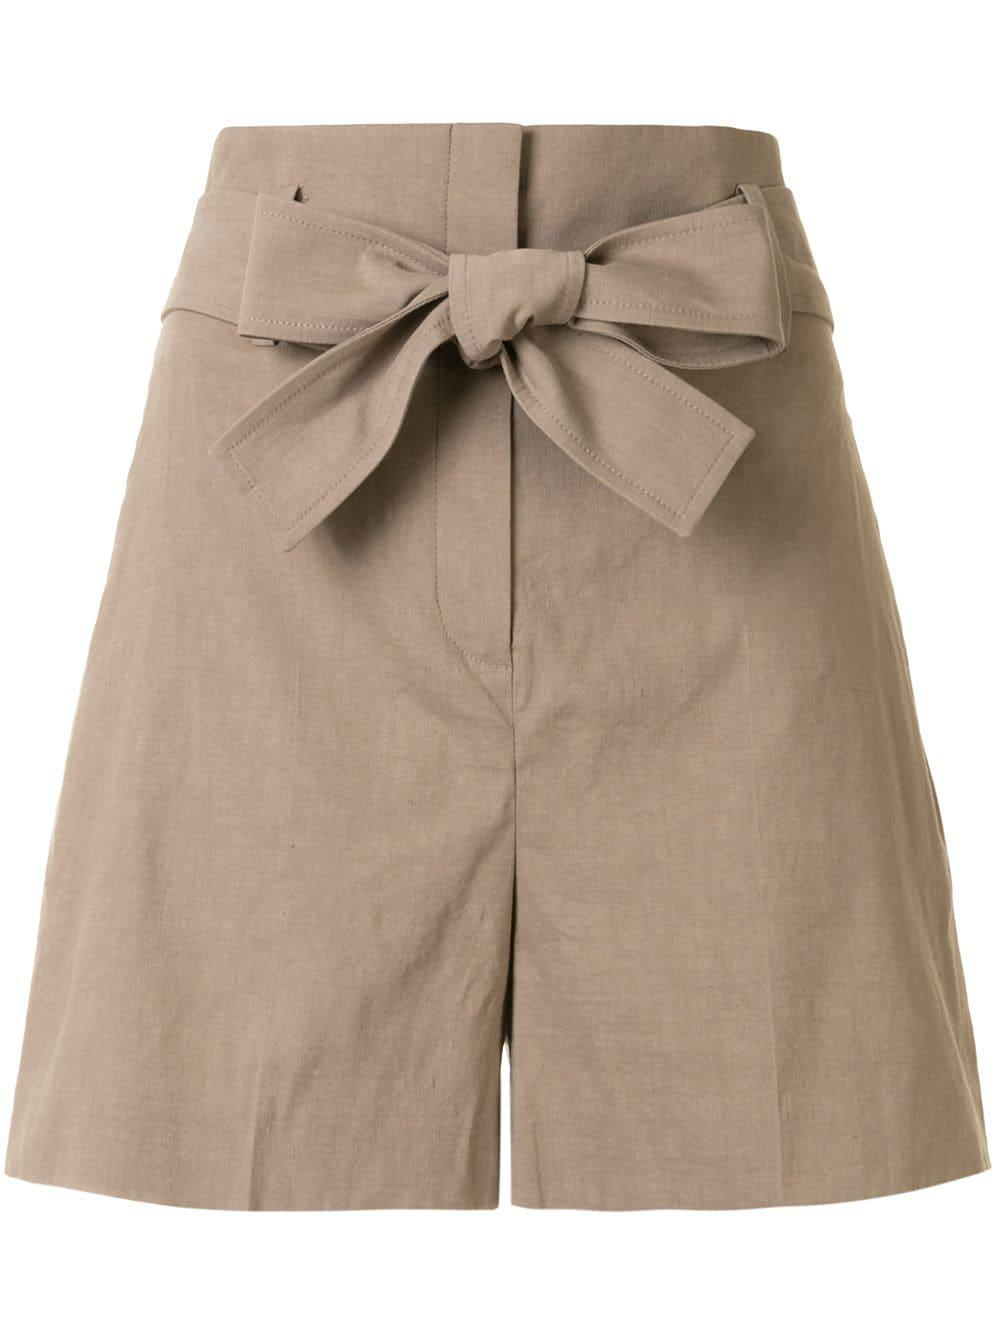 Eco Crunch Belted Linen Short Item # K0203216